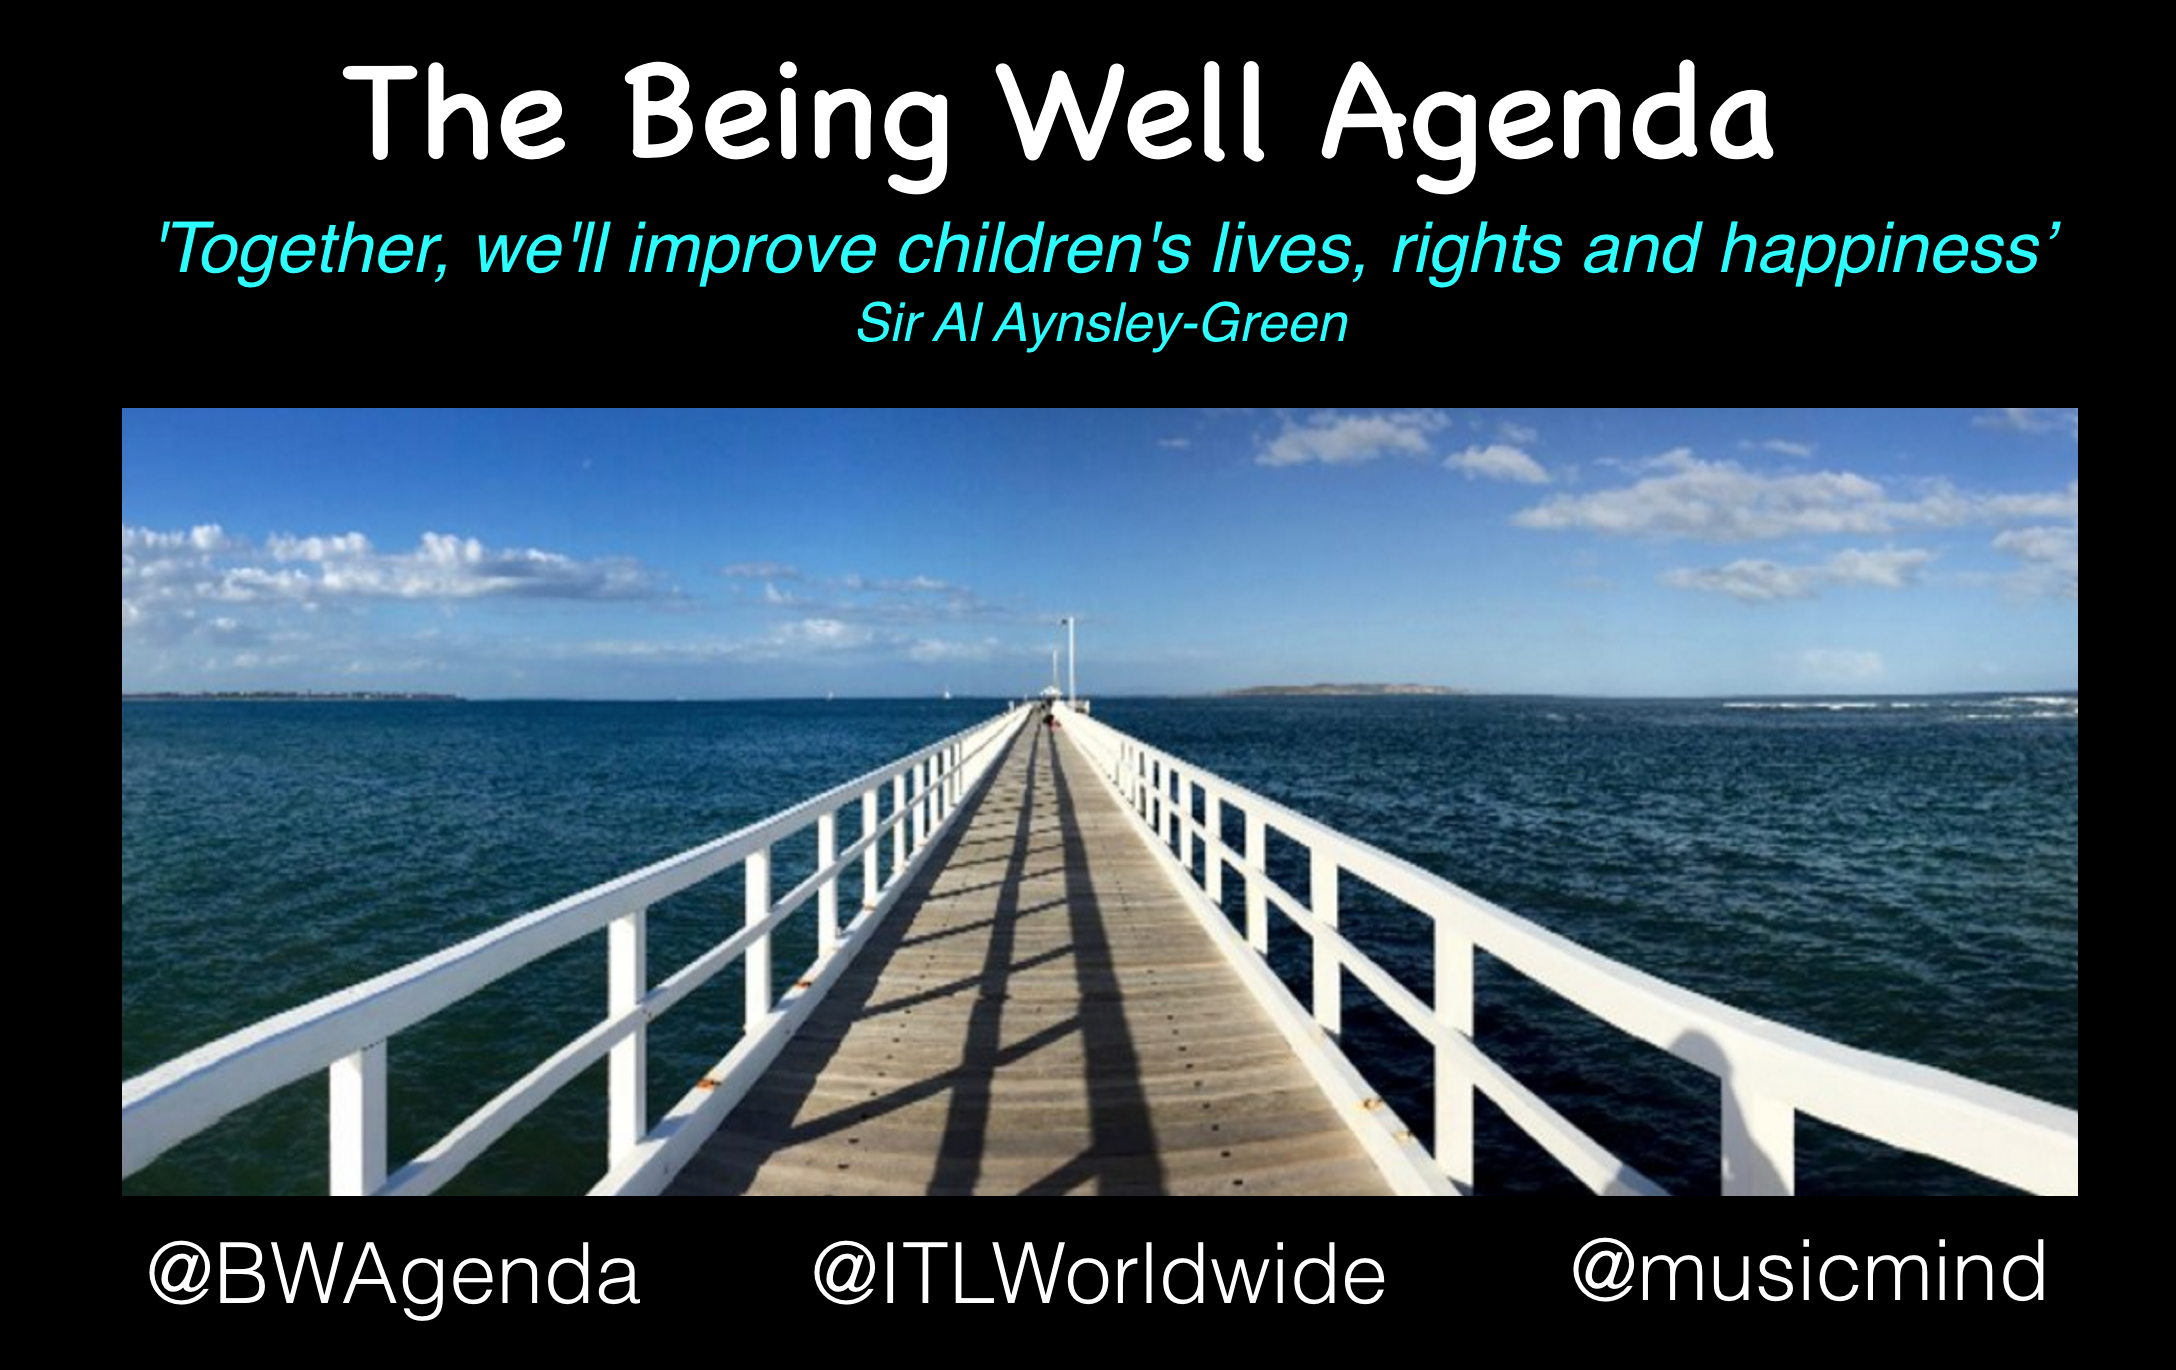 The Being Well Agenda